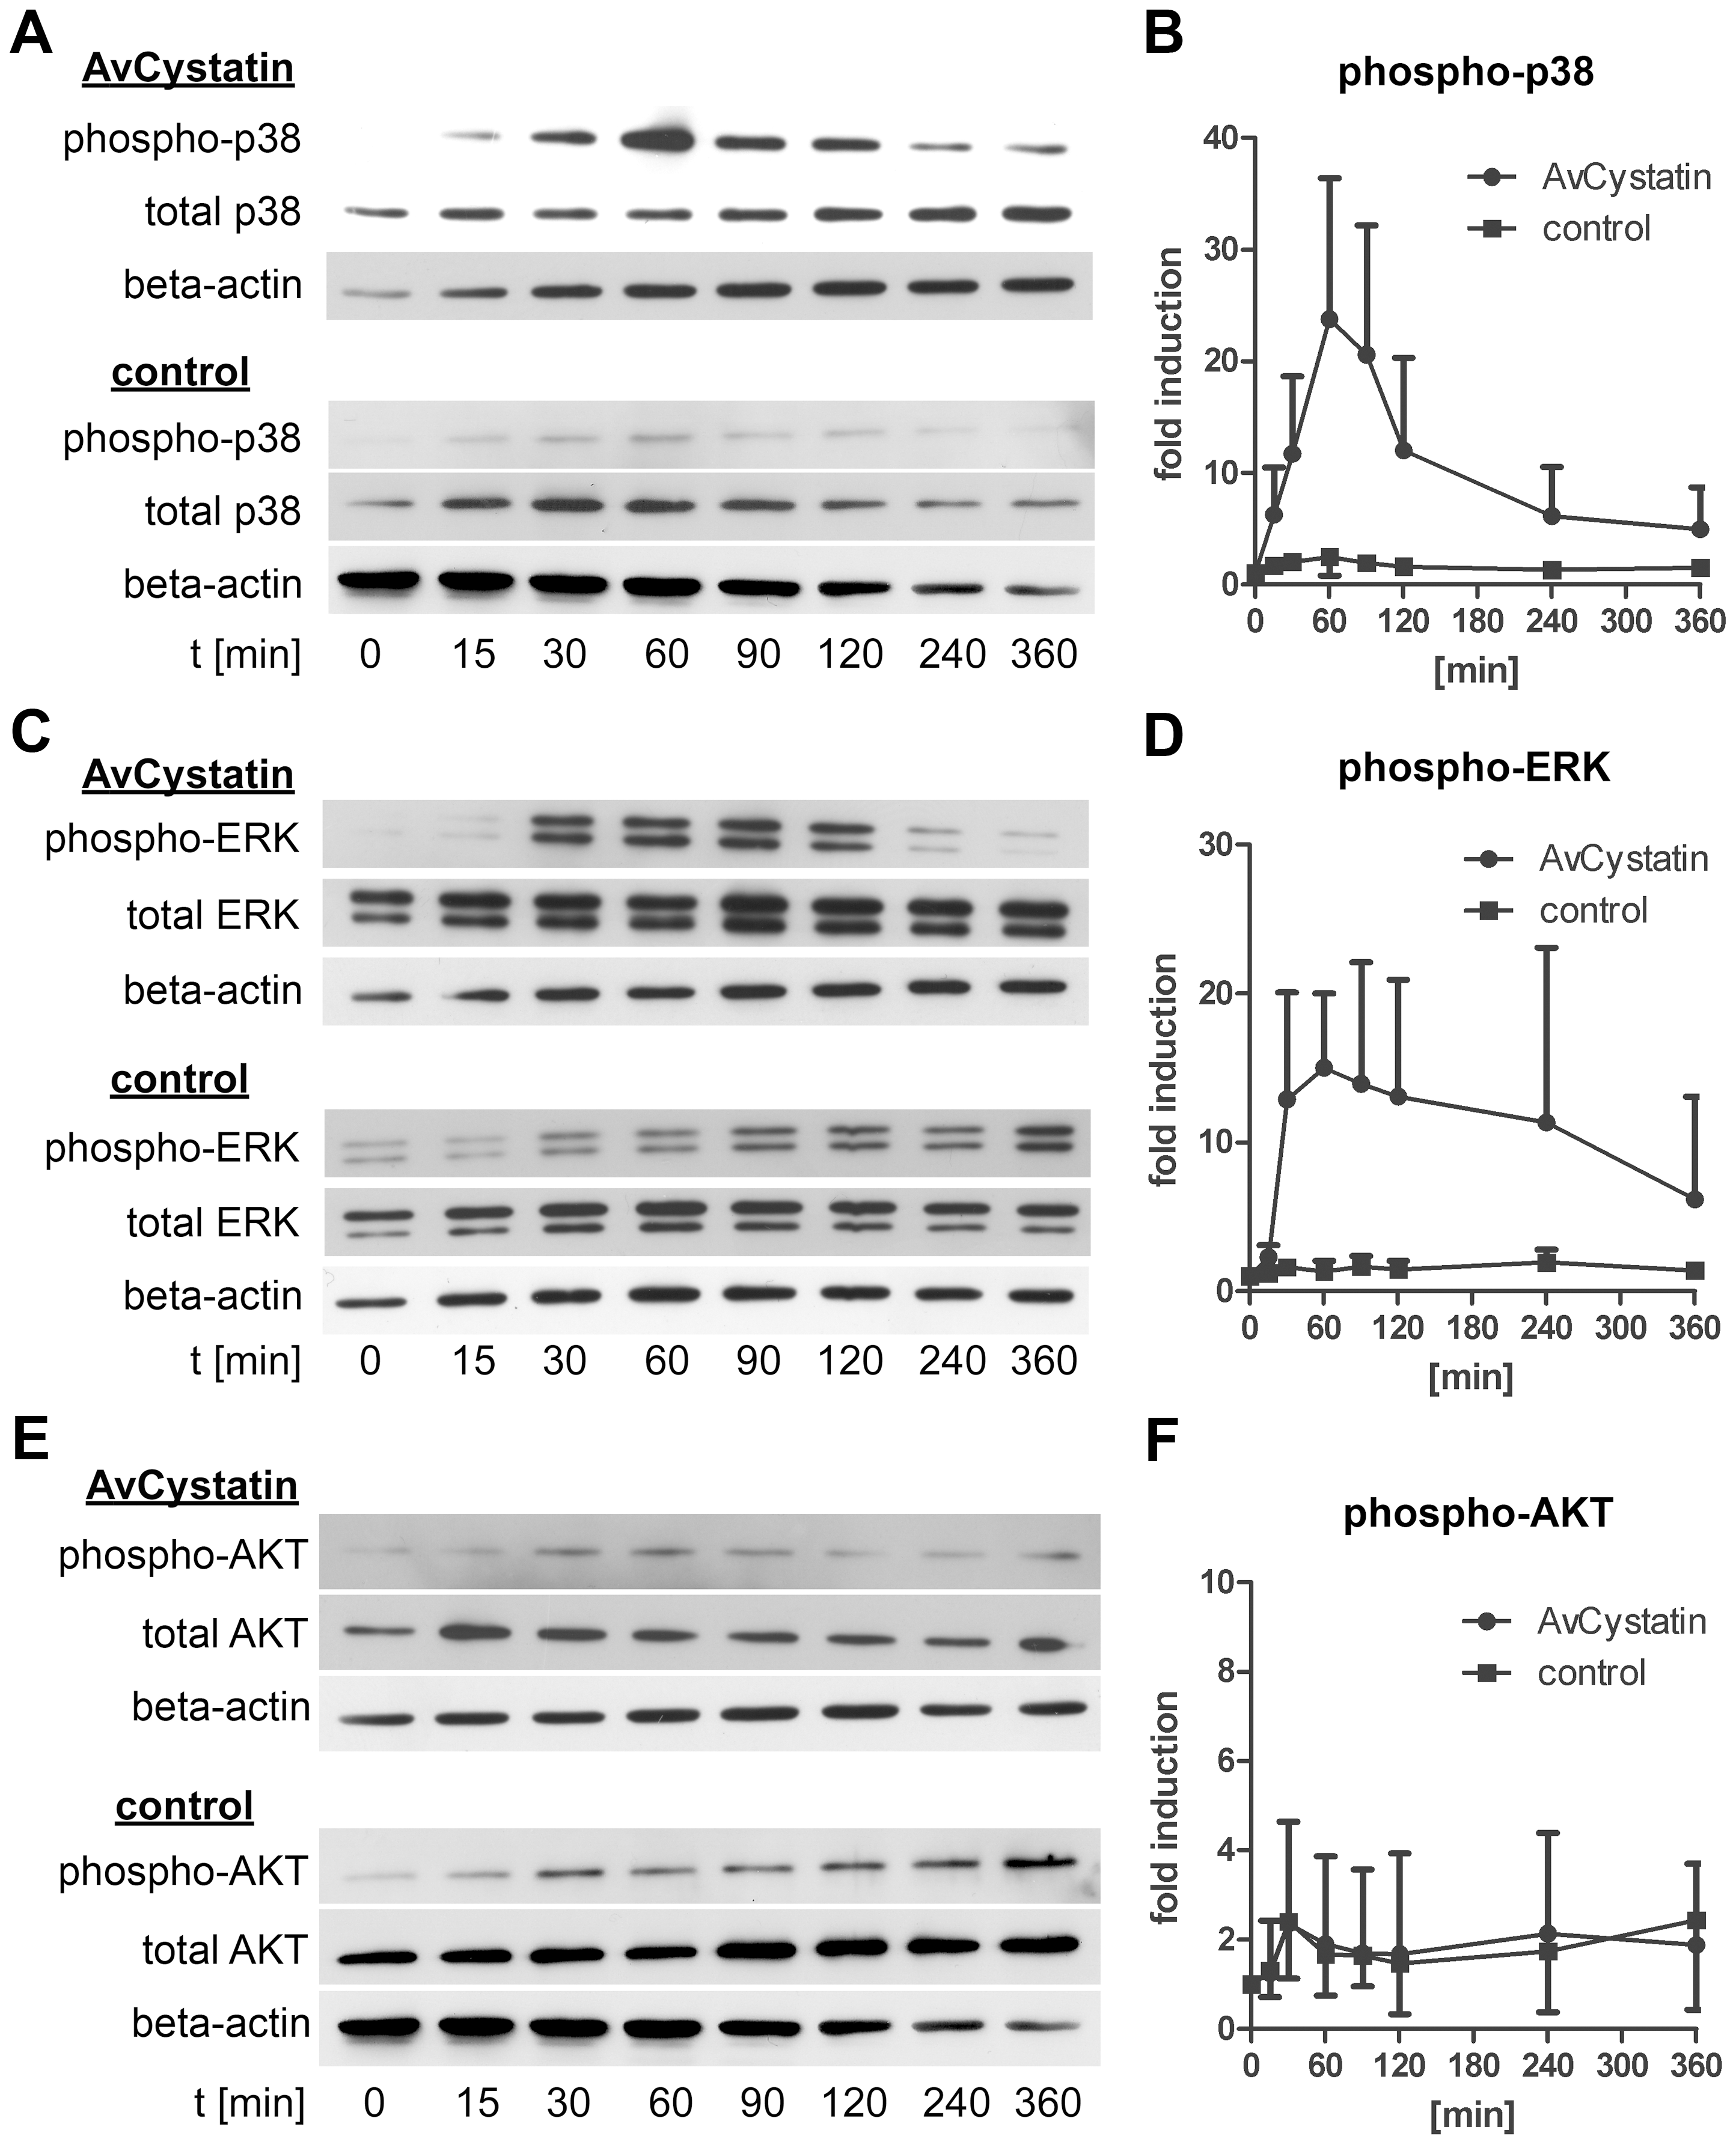 AvCystatin stimulation induces transient phosphorylation of p38 and ERK.